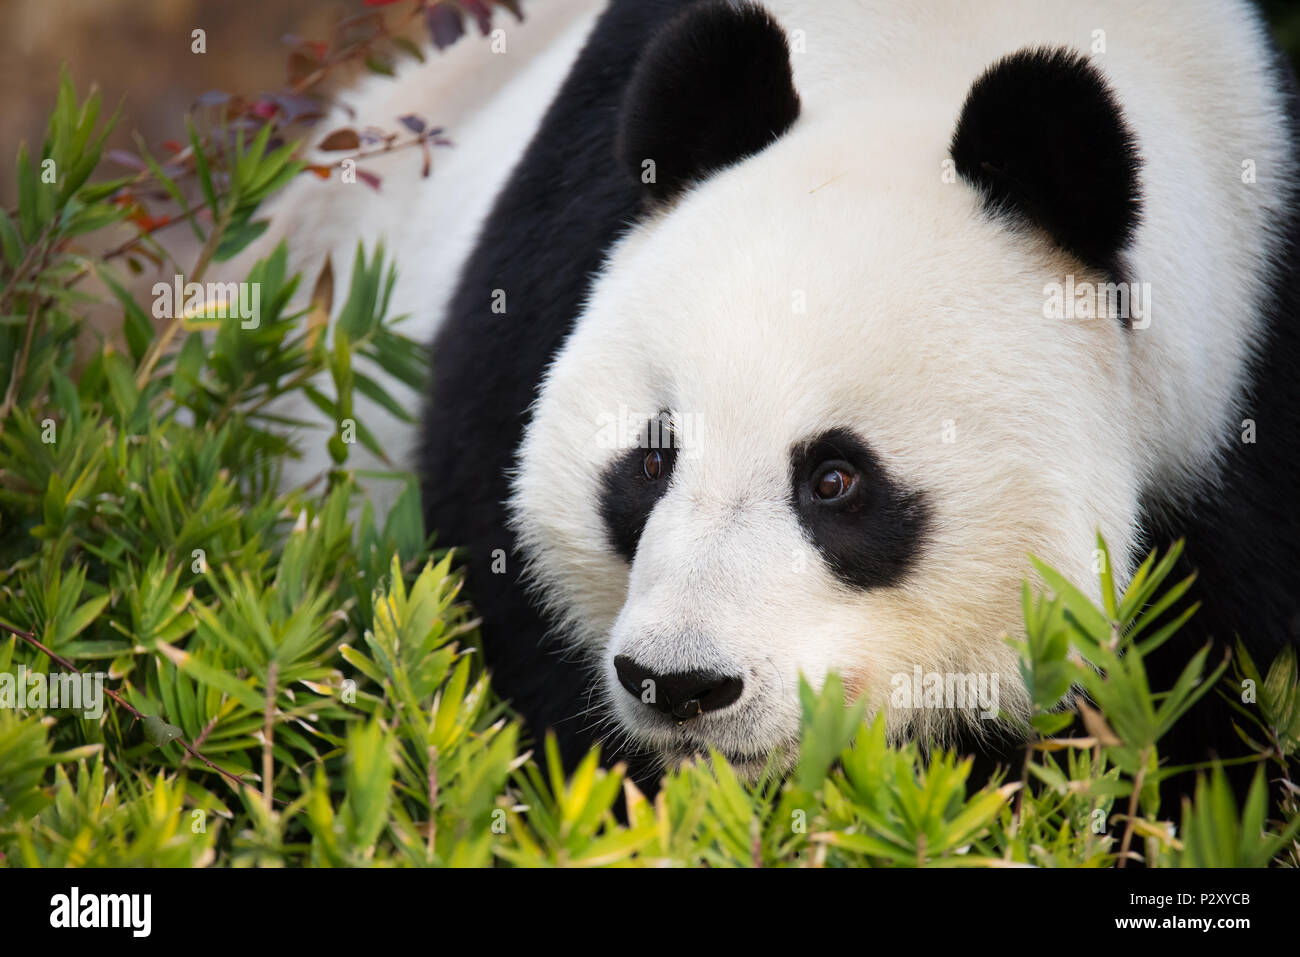 A Giant Panda at a zoo in South Australia, which is one of only two pandas on Australia.  Giant Pandas are vulnerable to extinction in the wild. - Stock Image